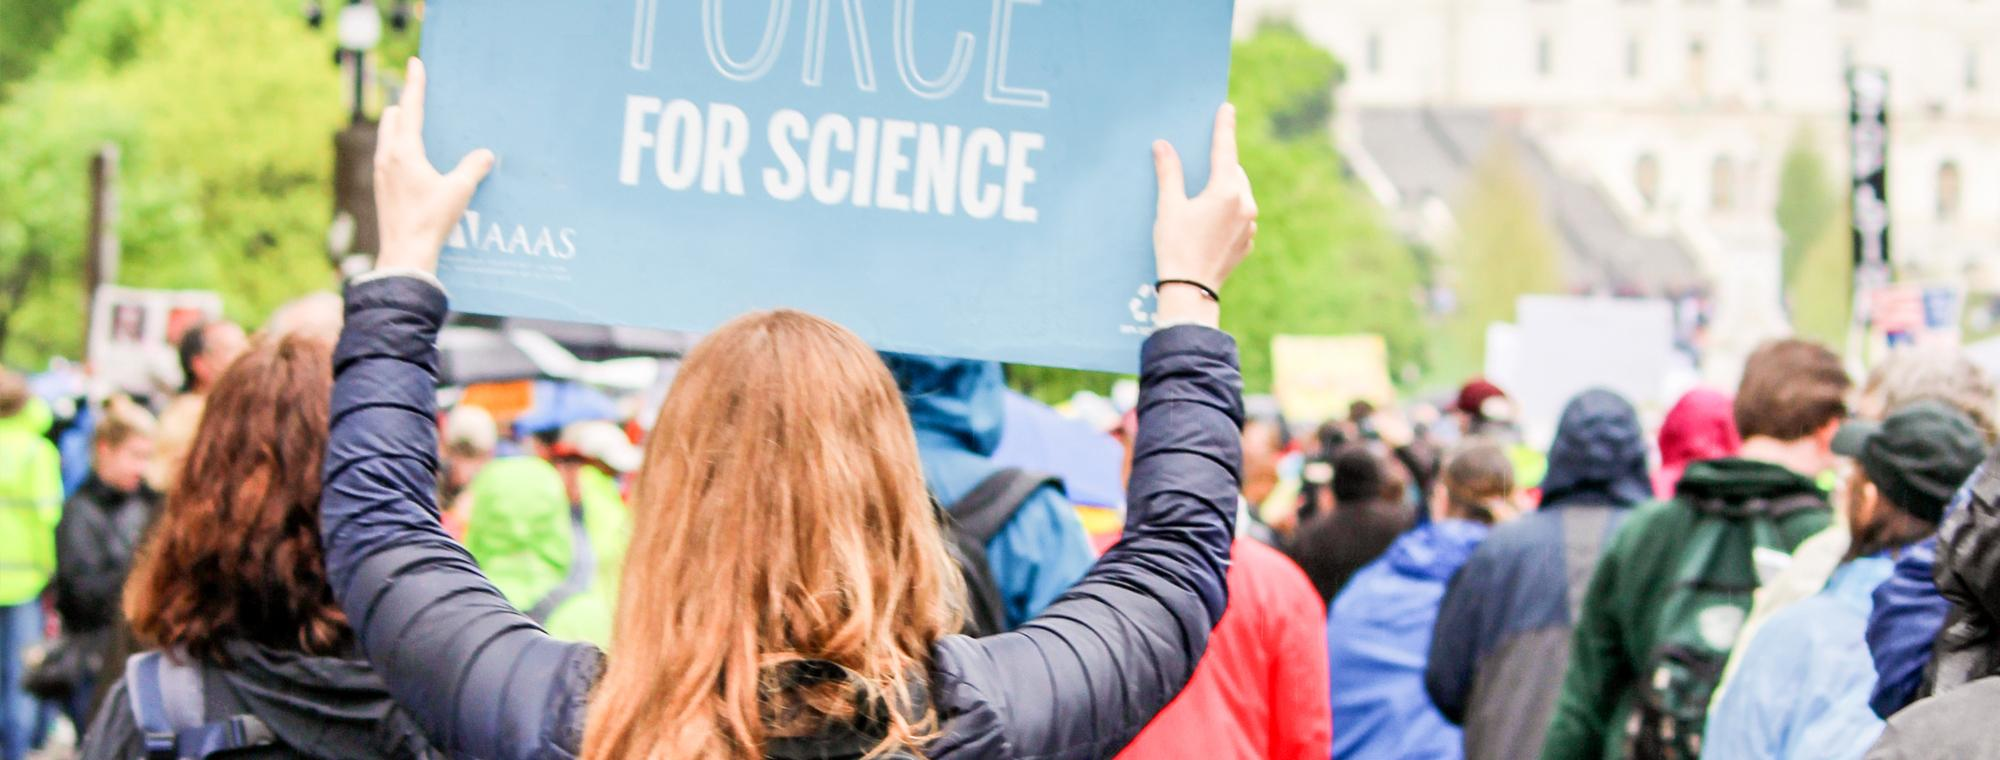 March For Science (c) Joe Flood_(Flicker_cc-by-nc-nd 2.0)